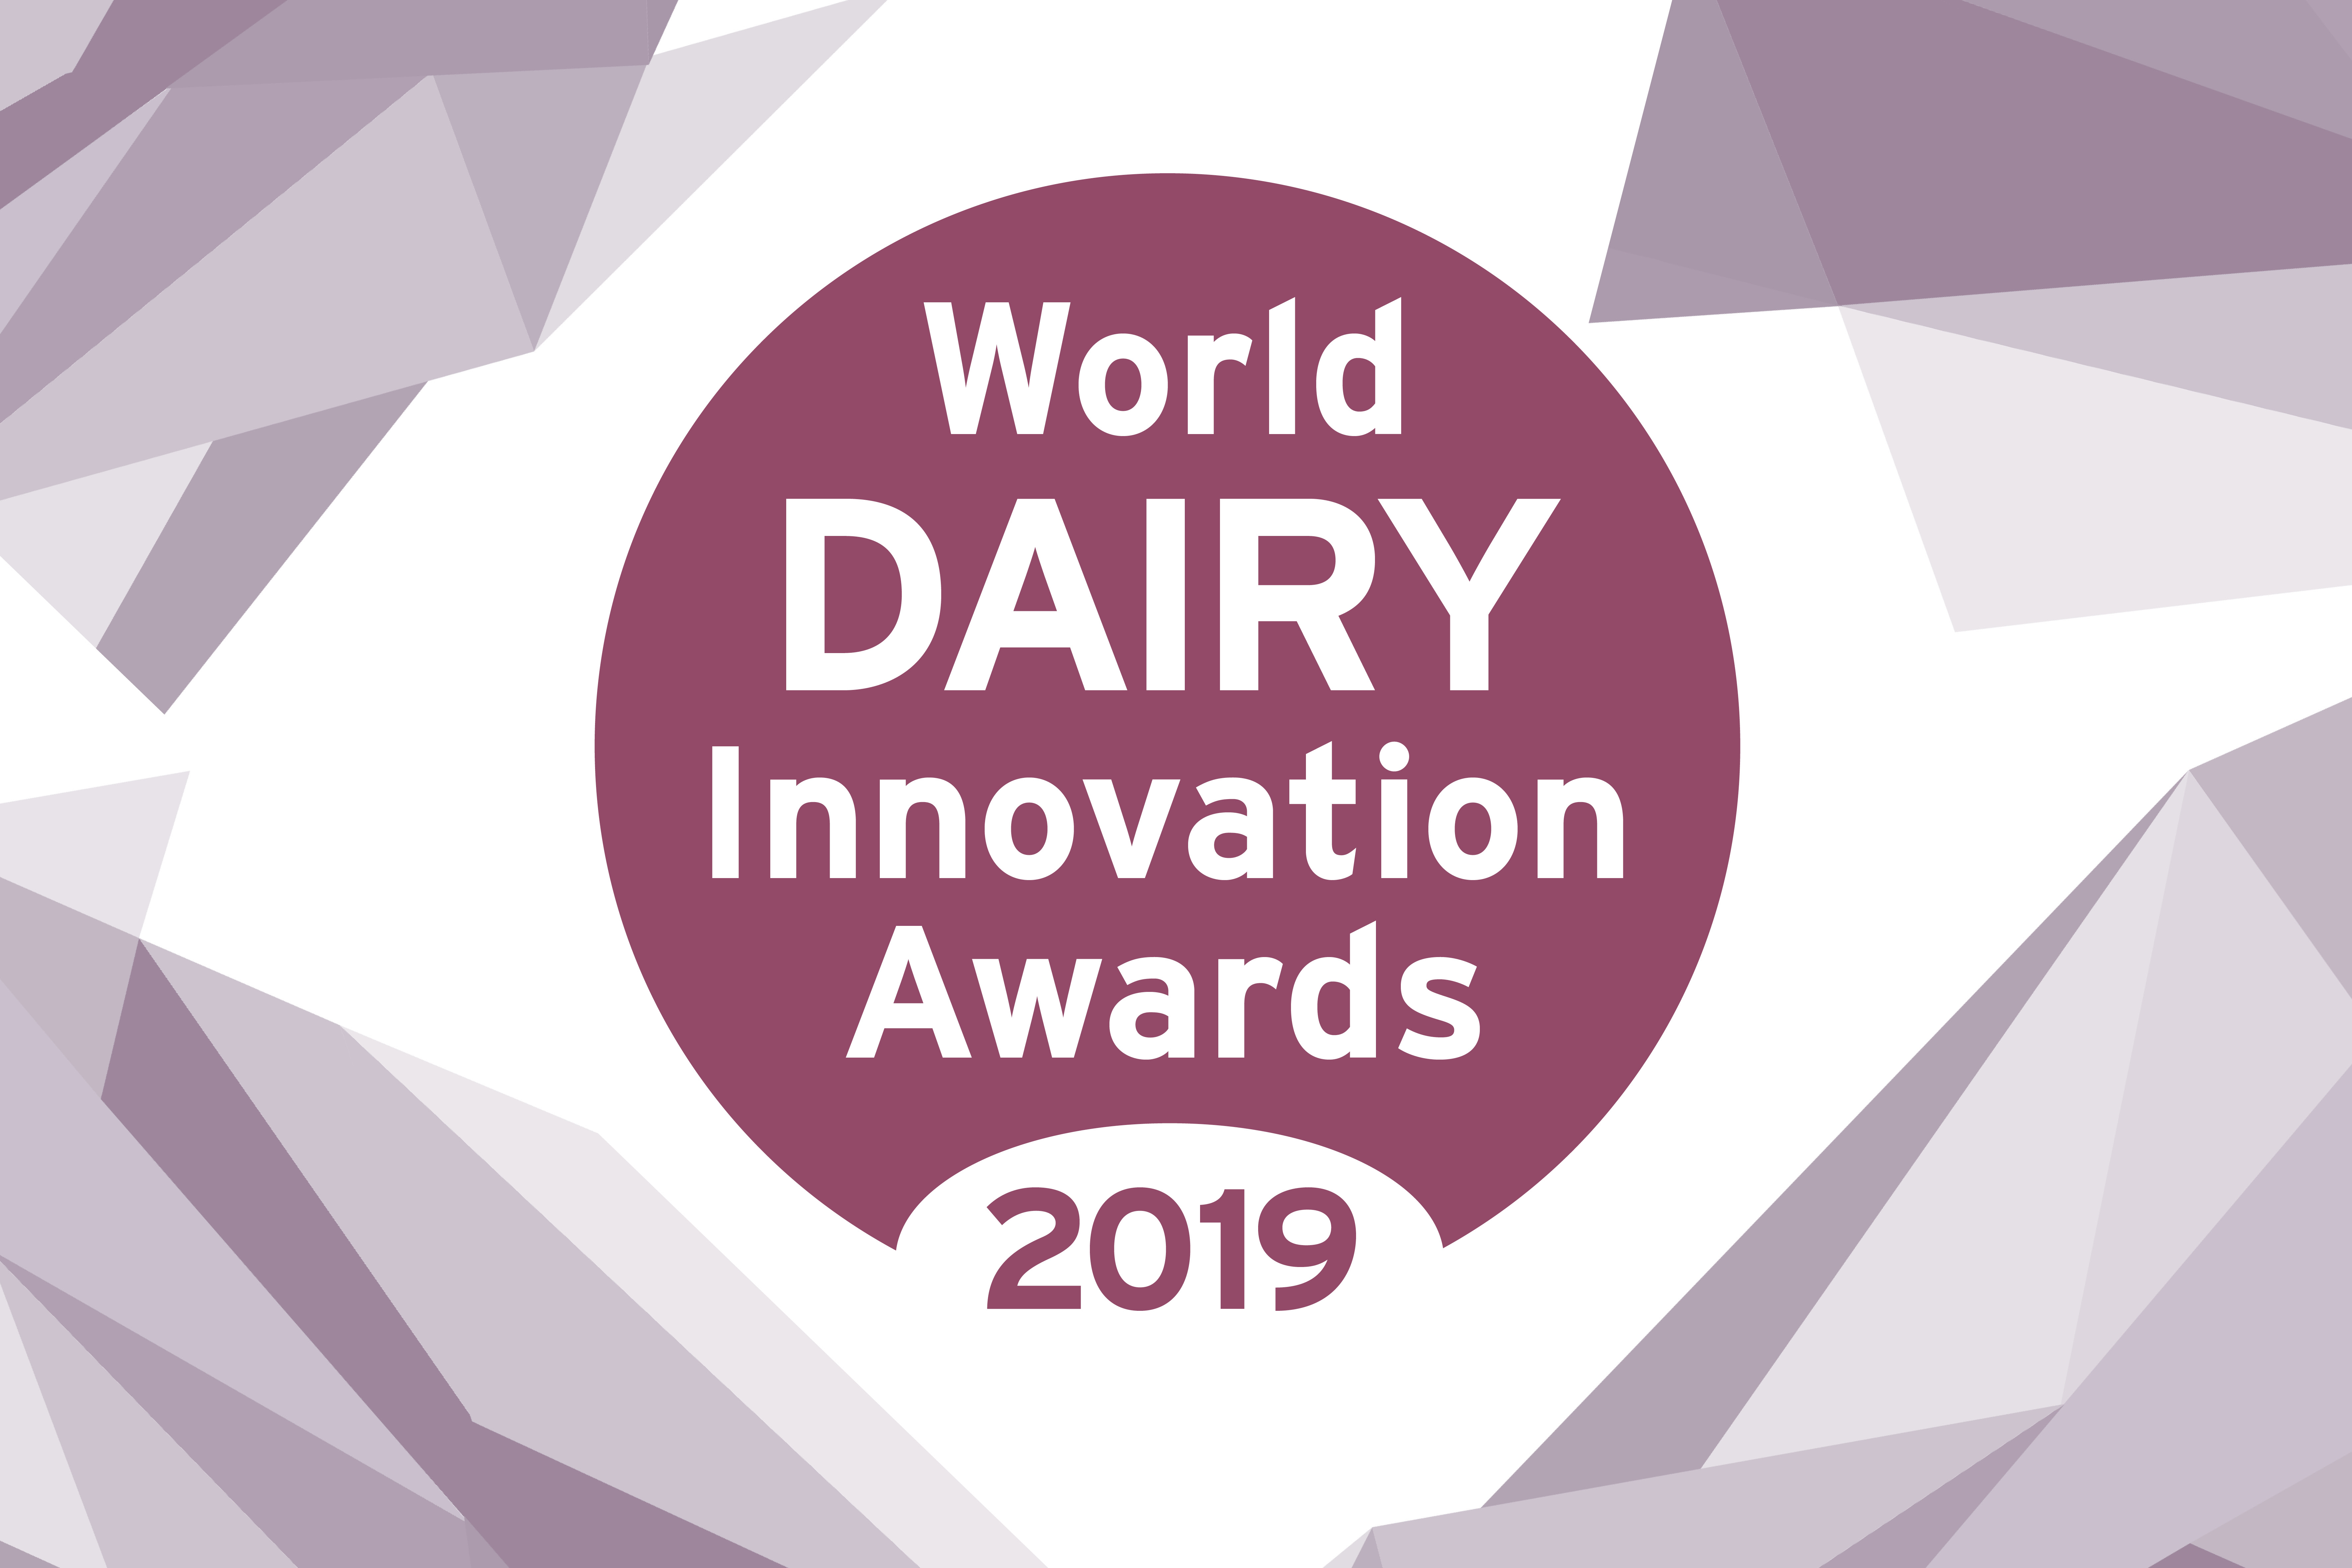 World Dairy Innovation Awards 2019: what makes an entrant stand out?